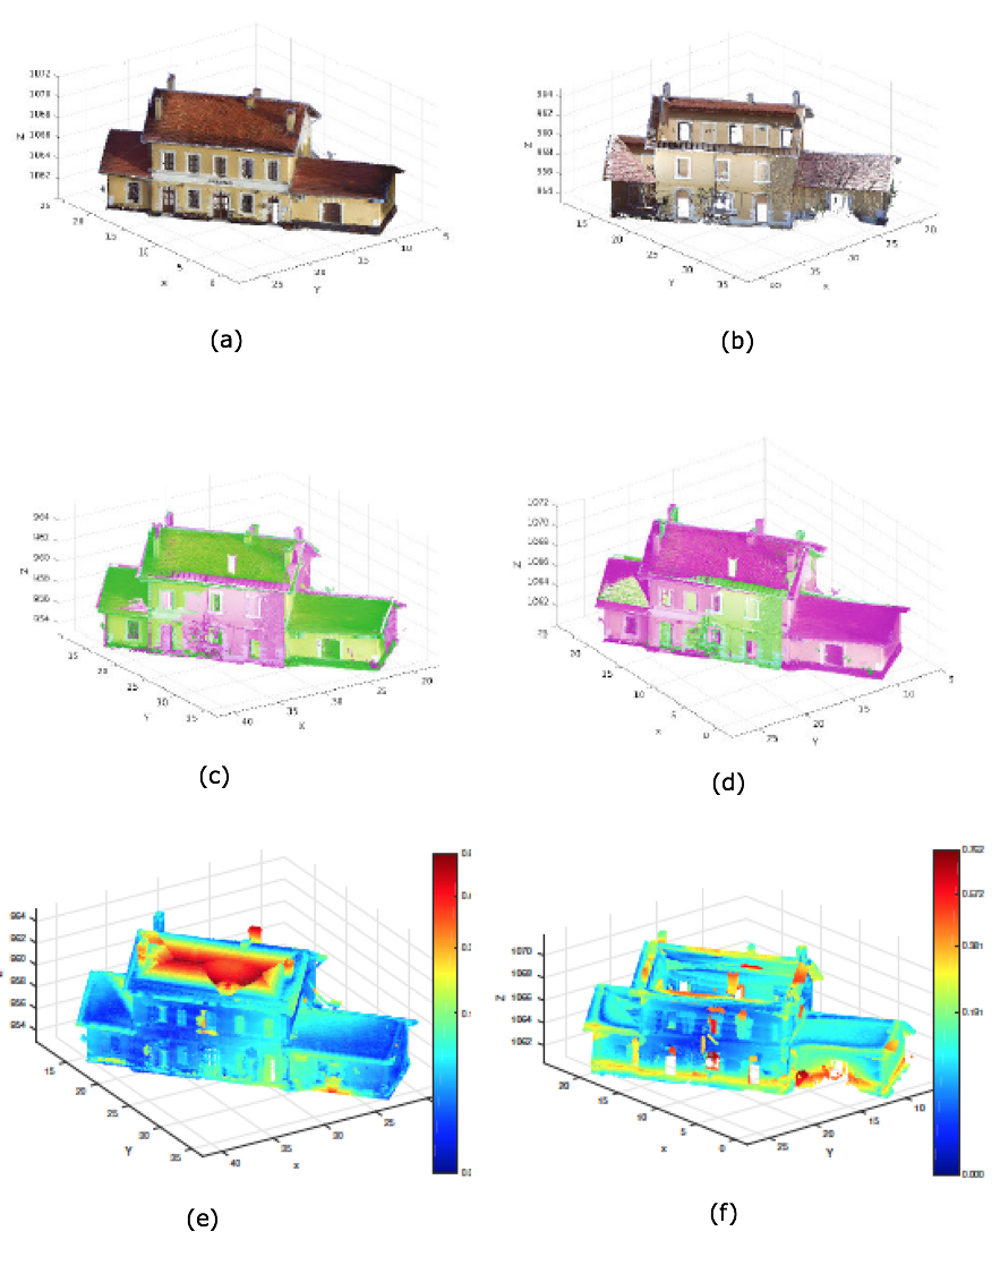 Digital scans of buildings lets researchers compare similarities and differences.